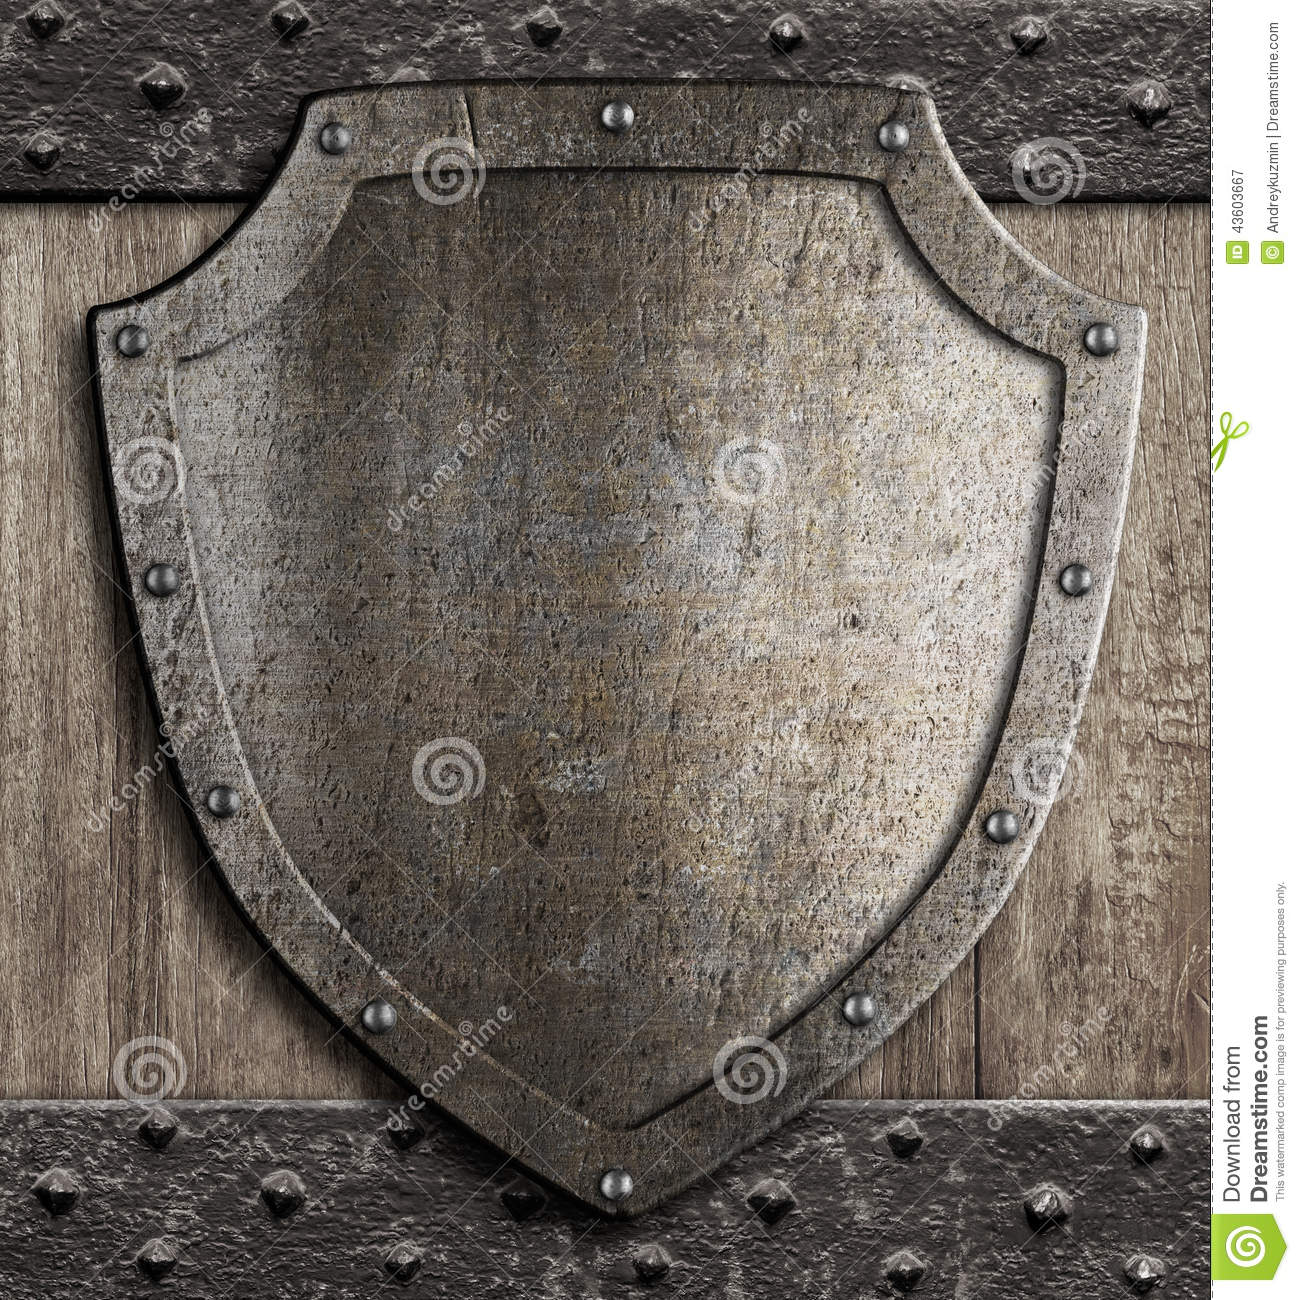 Medieval Shield On Wooden Gate Stock Photo - Image: 43603667